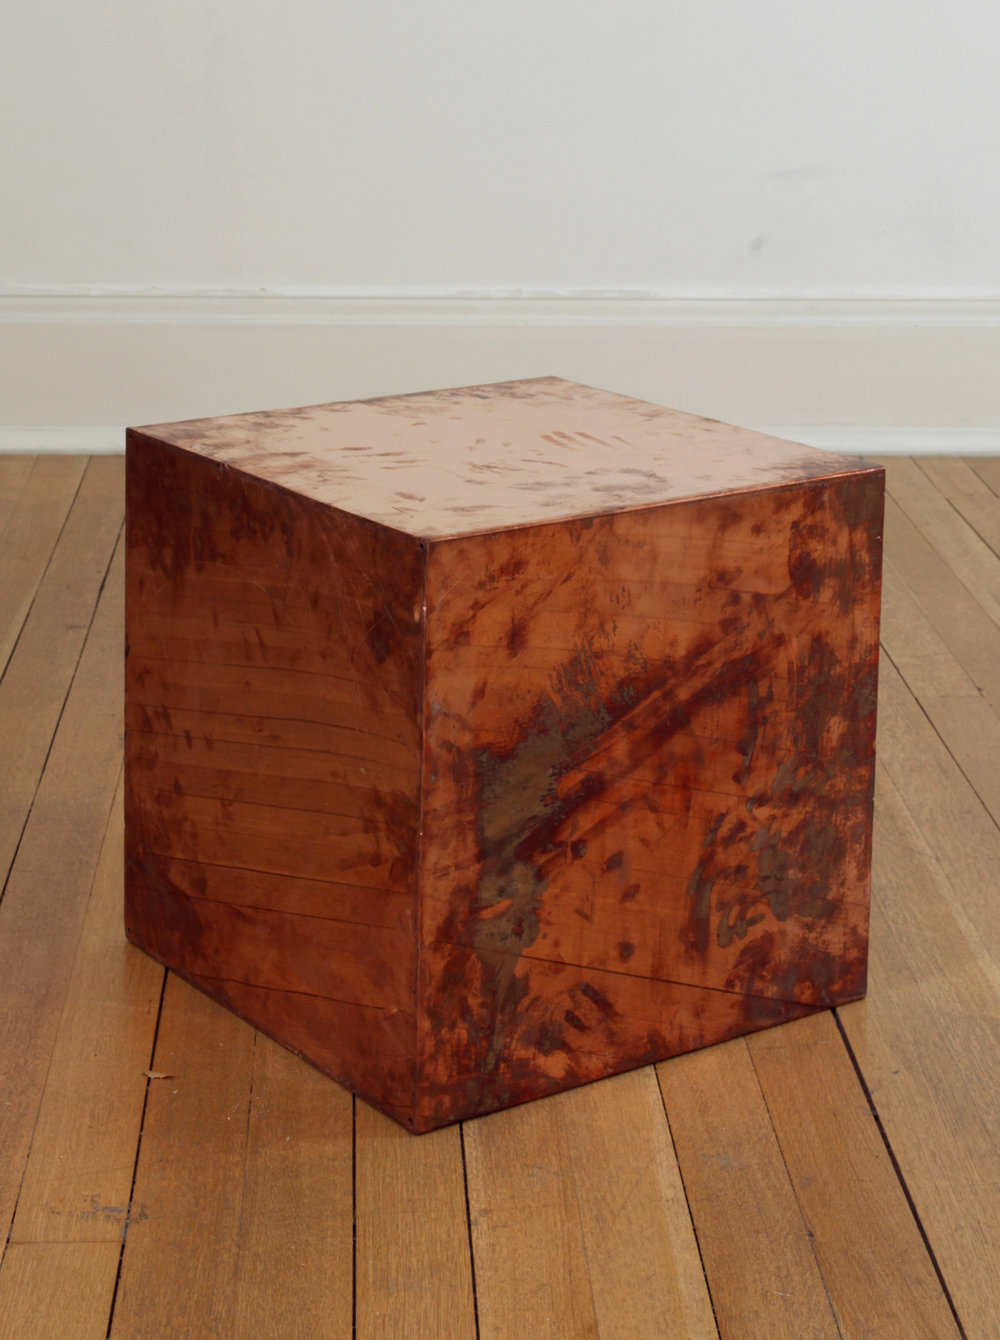 FedEx® Large Kraft Box  © 2005 FEDEX 330508 REV 10/05 SSCC, International Priority, Los Angeles-London trk#868587725897, October 02-05, 2009    2009–   Polished copper, accrued FedEx shipping and tracking labels  20 x 20 x 20 inches   Production Stills, 2009